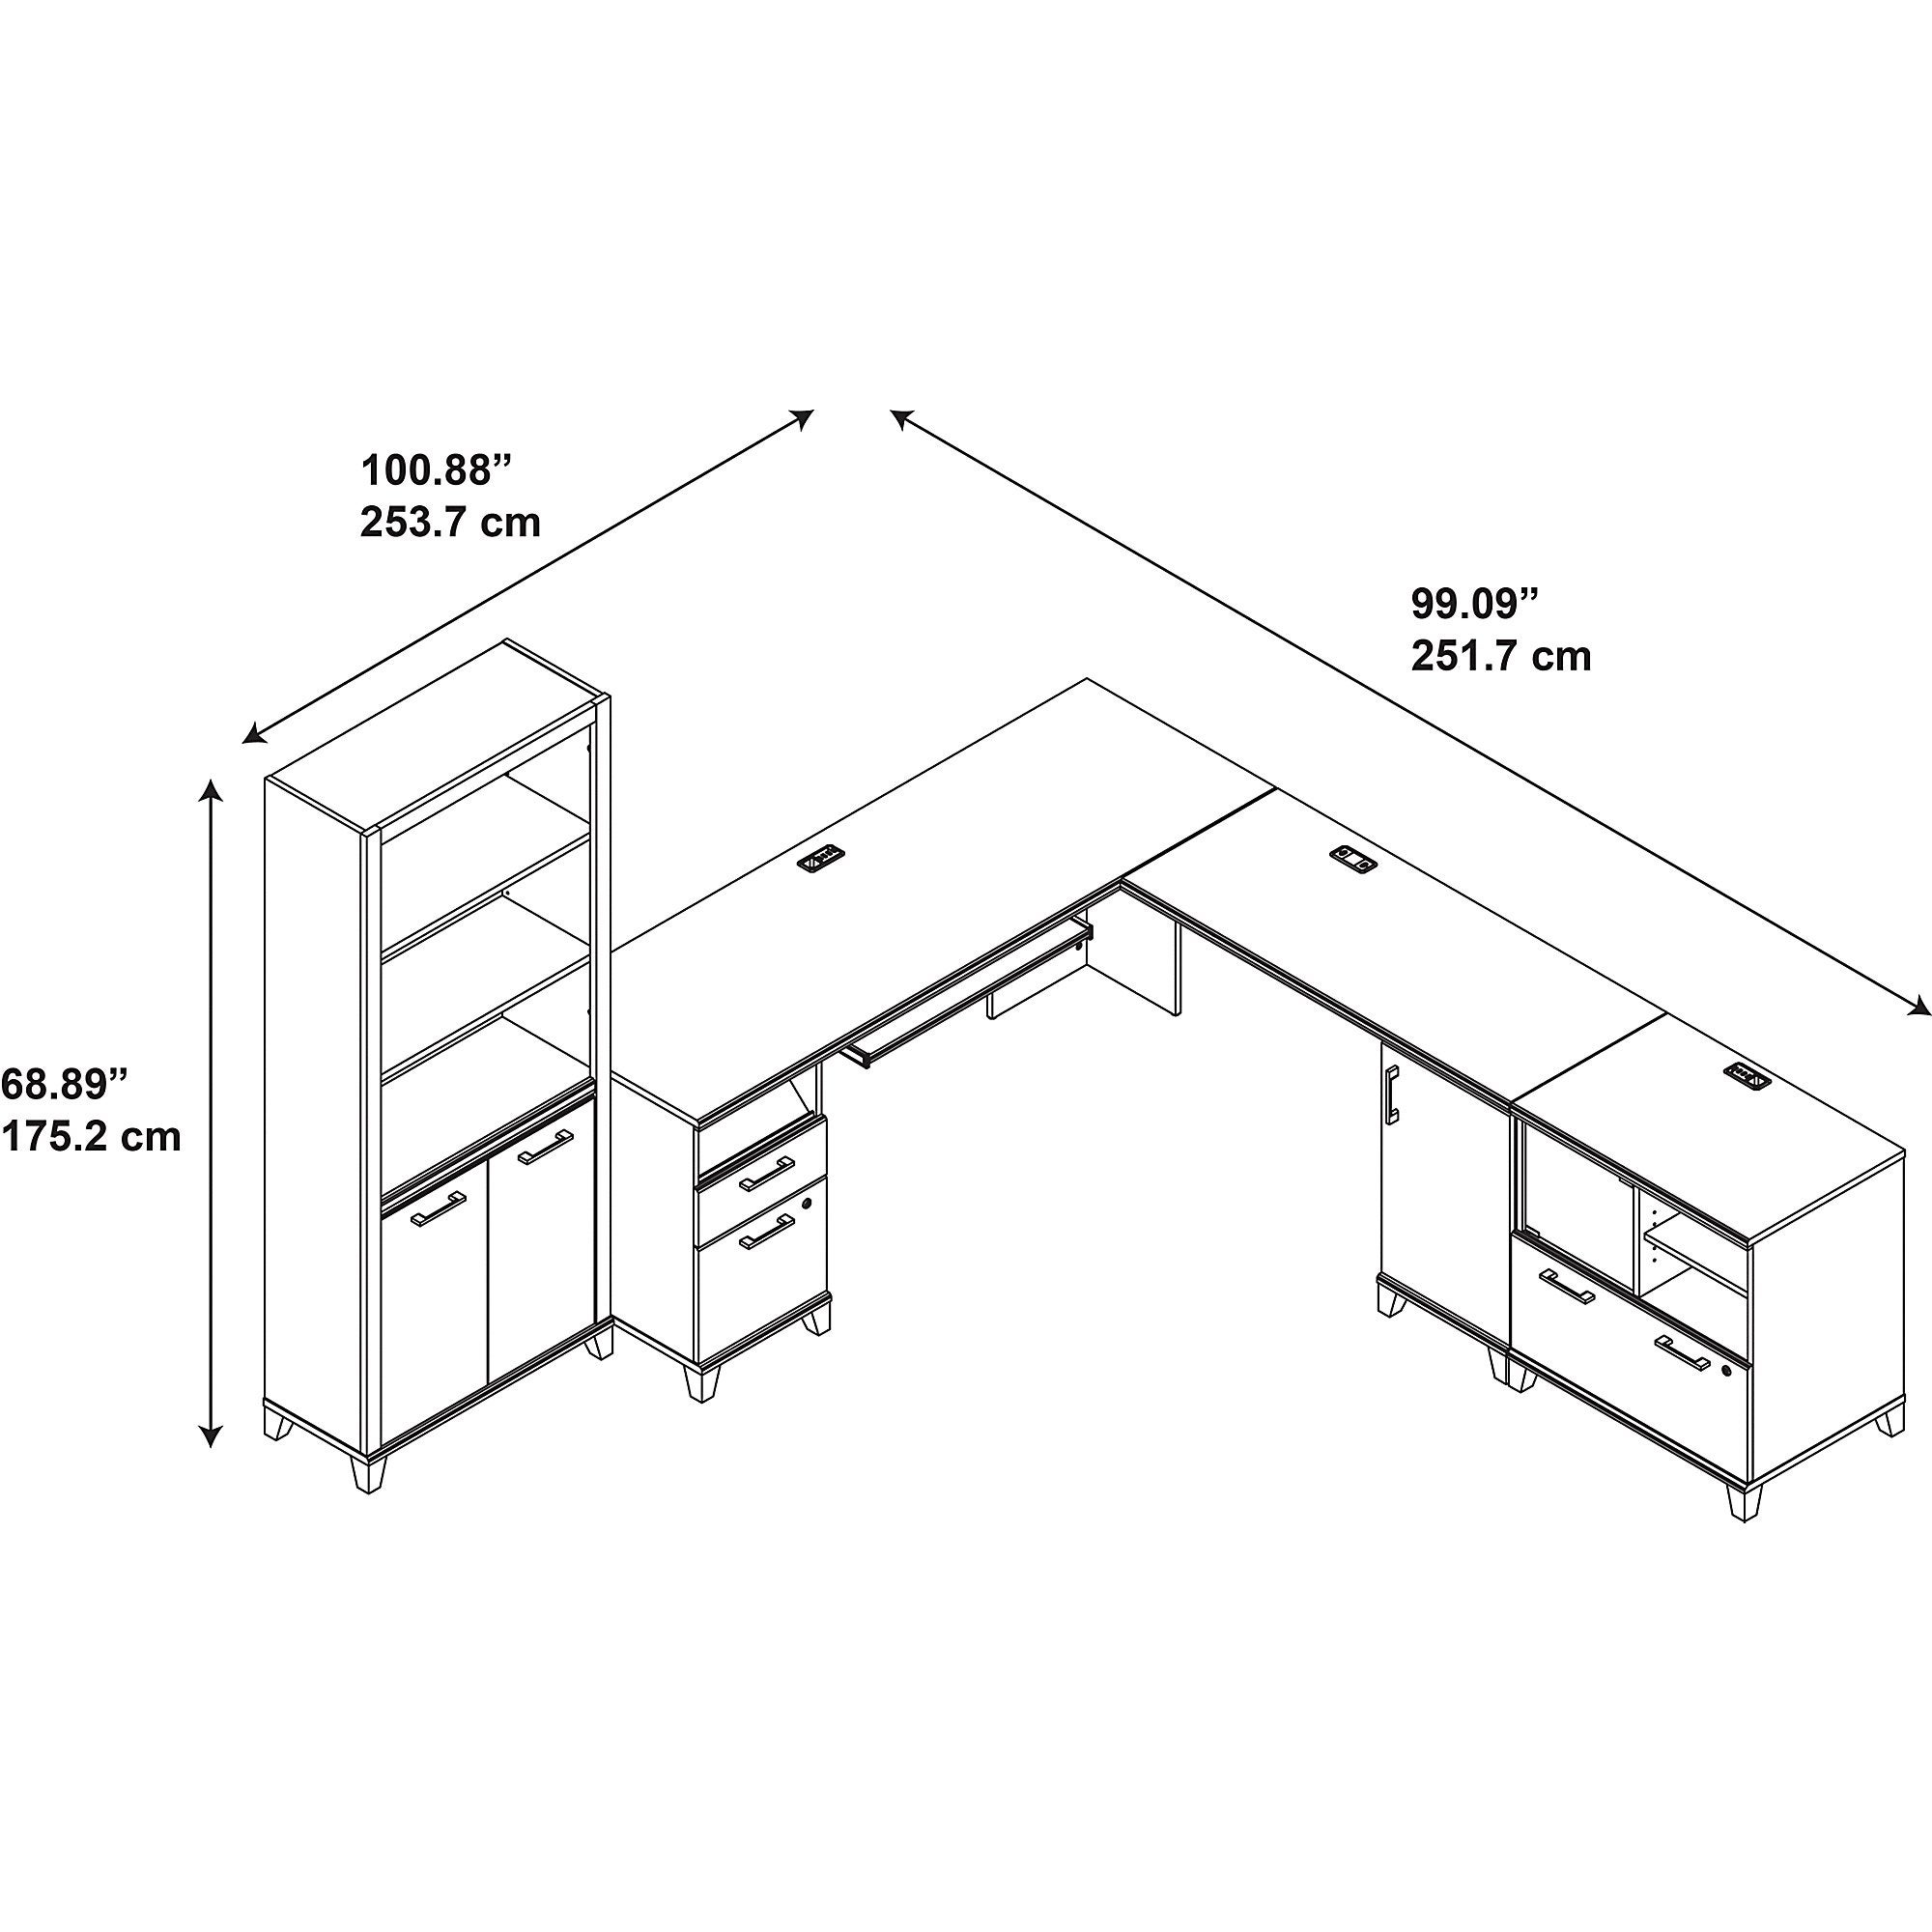 Shop Achieve L Shaped Desk With Bookcase And Printer Stand File Schematic Cabinet Free Shipping Today 10764840